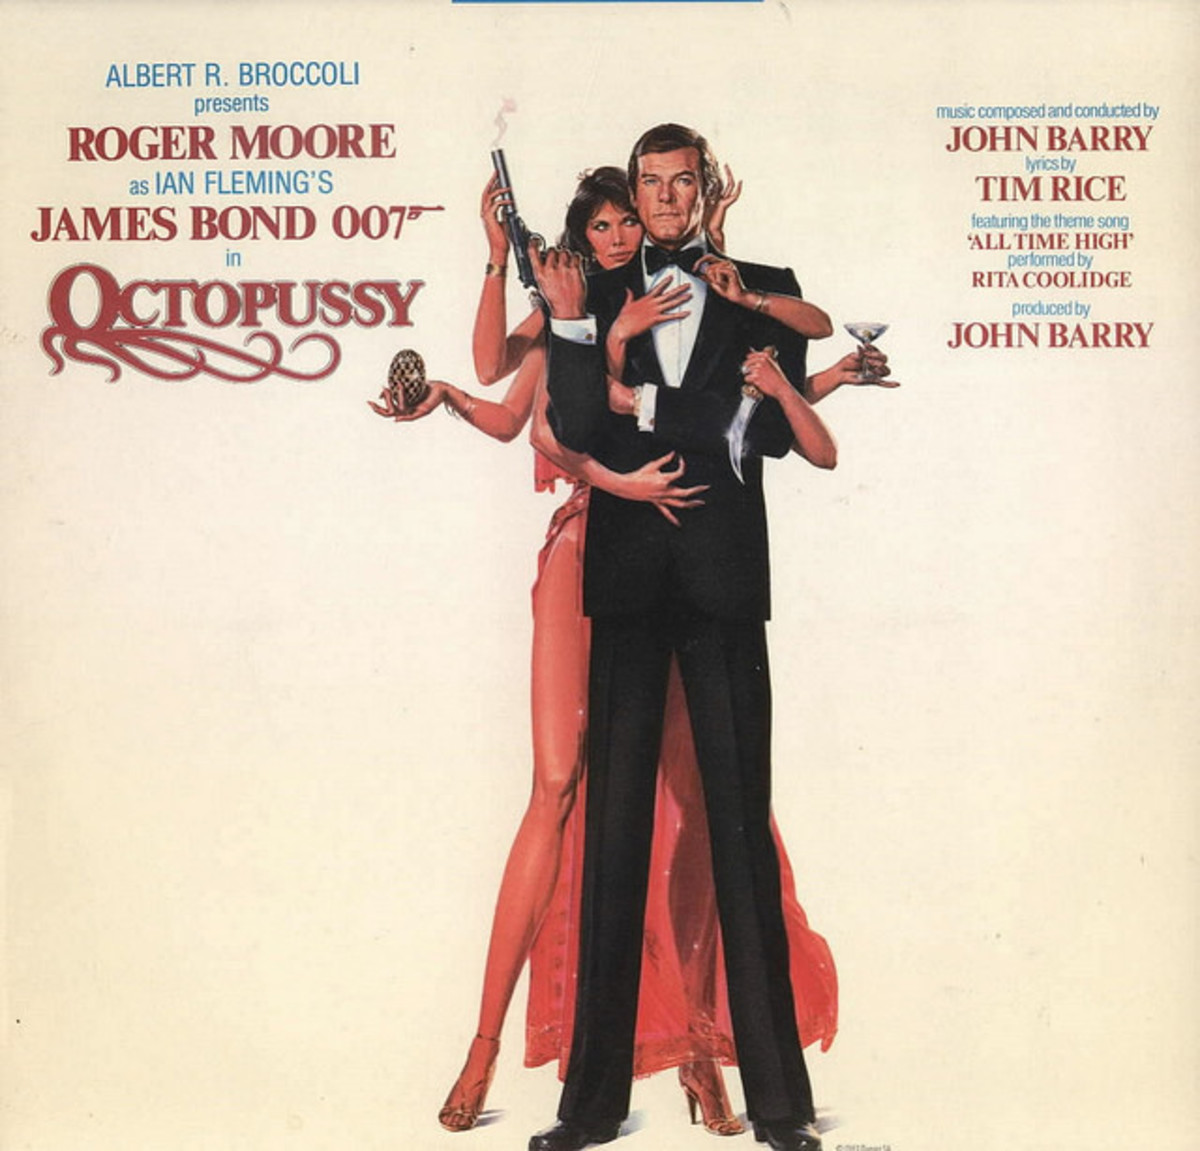 "Ian Flemings' James Bond 007 ""Octopussy"" A&M Records SP 04967 12"" LP Vinyl Record Roger Moore - John Barry Soundtrack"